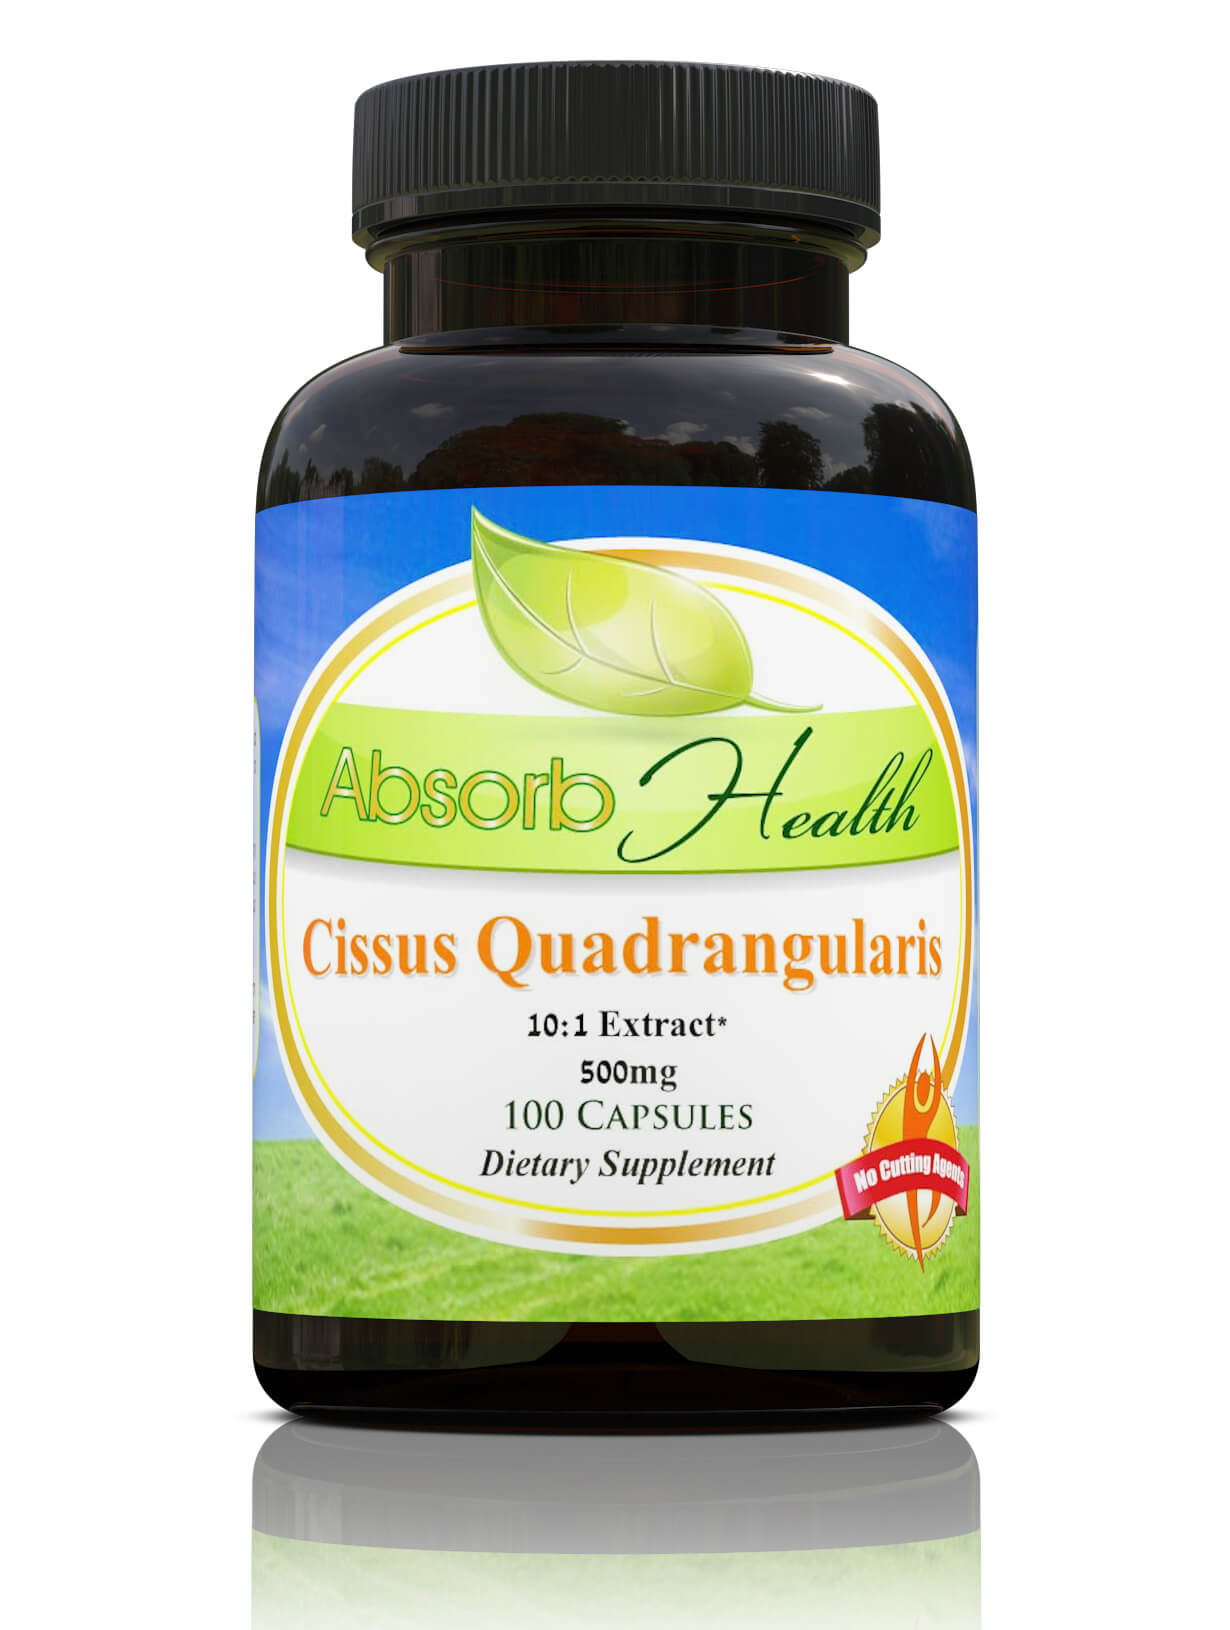 Is Cissus Quadrangularis Beneficial for Your Health?